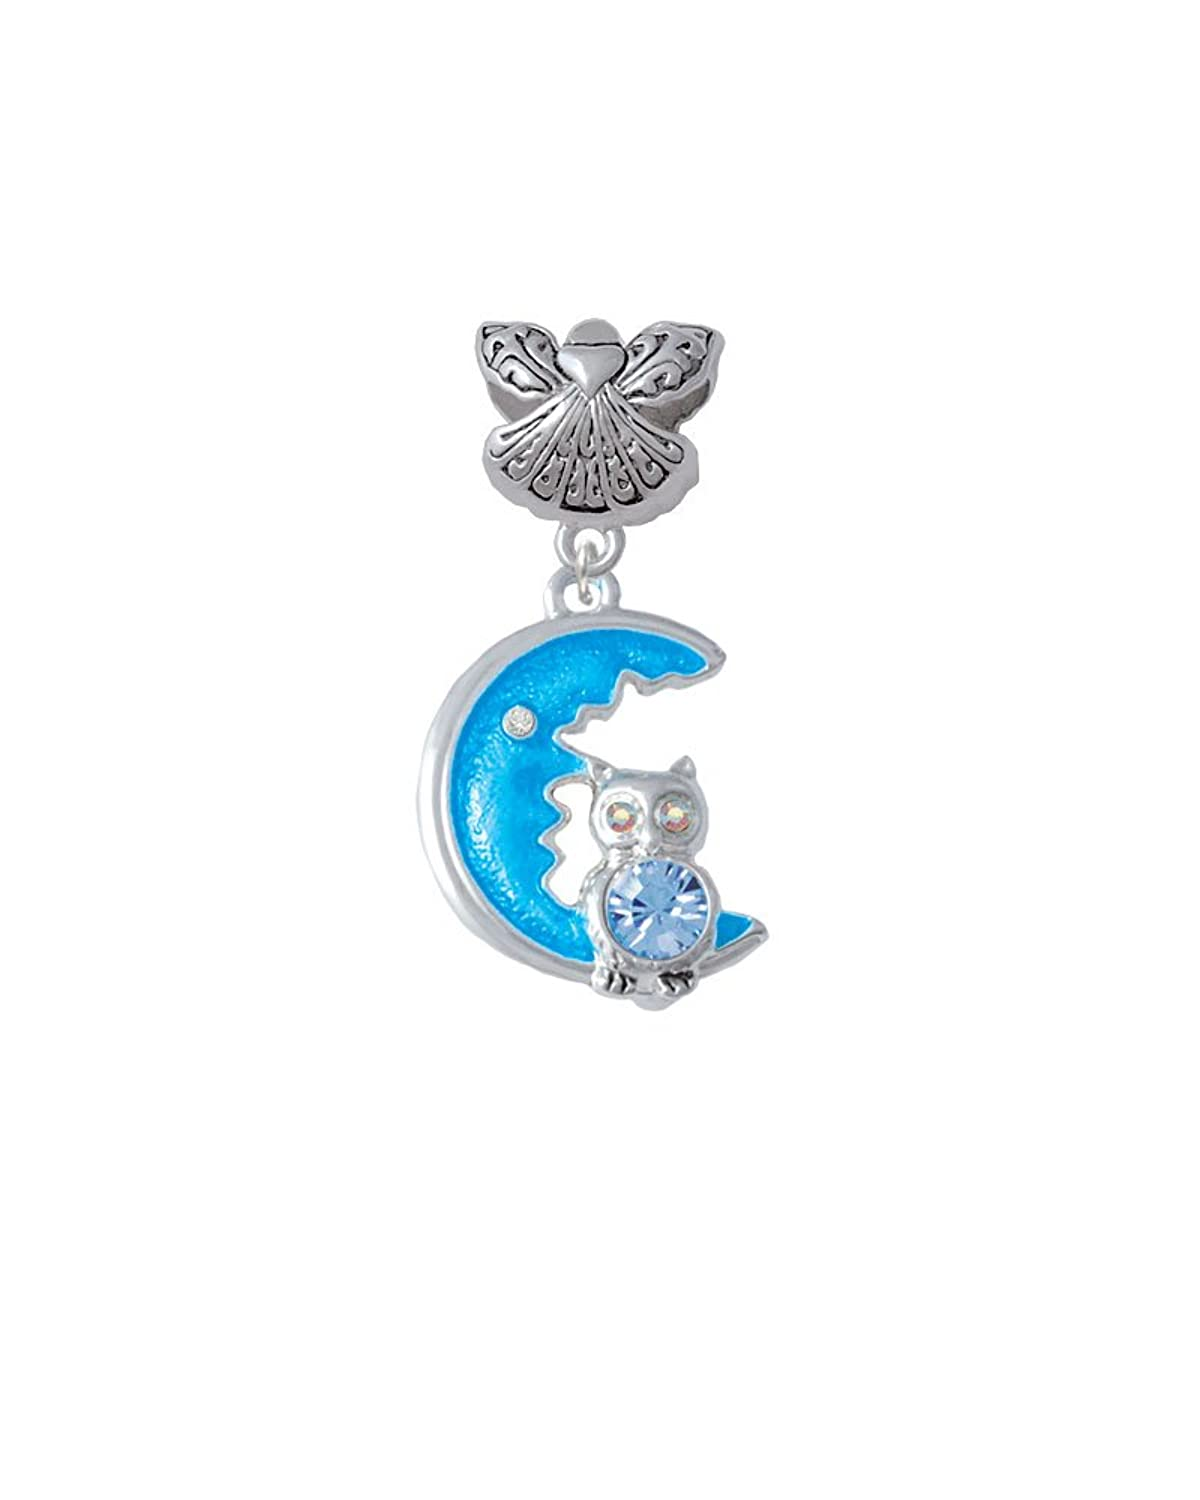 Large Crystal Owl Sitting on Moon - Guardian Angel Charm Bead